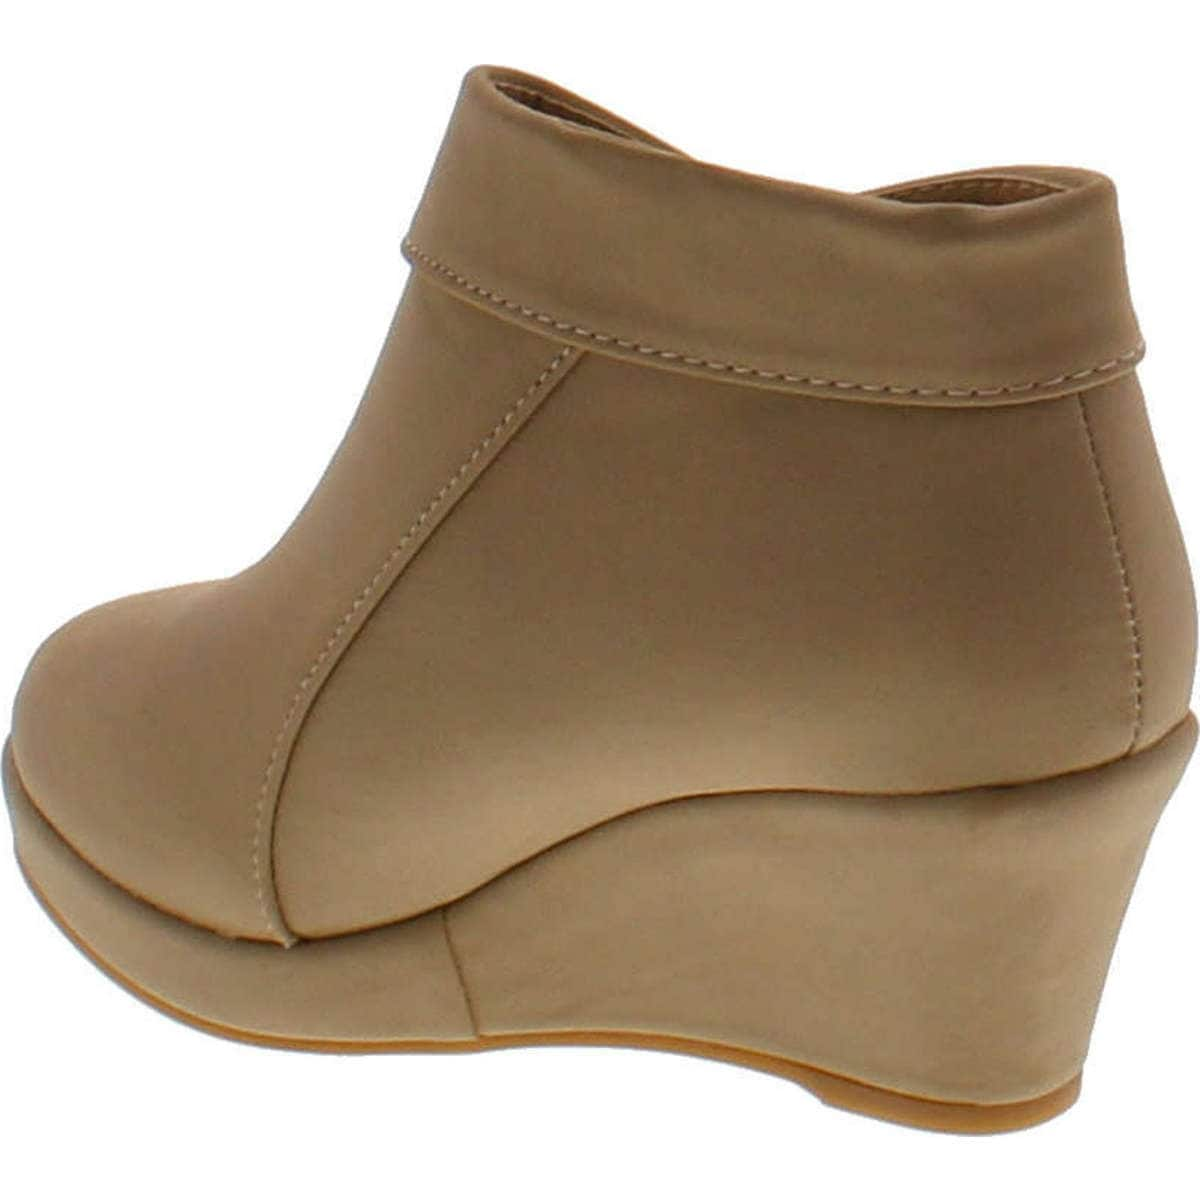 ac3ef11df794 Shop Lucky Top Stella-6K Children Girl s Platform Wedge Heel Fold Over  Ankle Booties - Free Shipping On Orders Over  45 - Overstock - 14756846